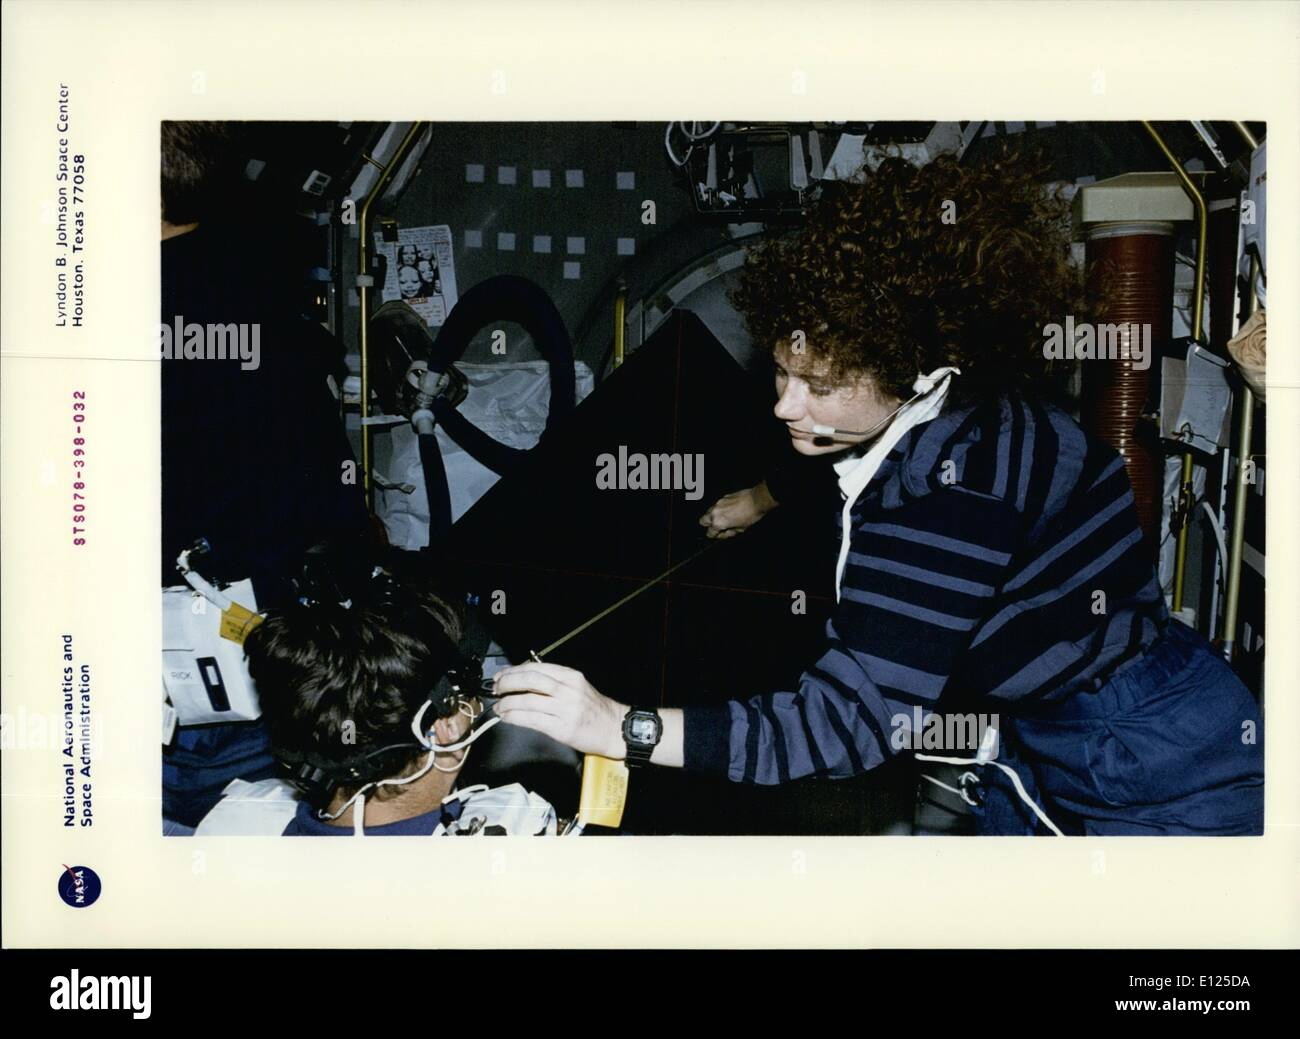 Jun. 06, 1996 - Astronaut Susan J.Helms, payload commander, measures the distance between Jean-Jacques Favier's head and the Luminous torque, used for the Canal and Otolith interaction study (Cois) on the Life and Microgravity Spacelab (Lms-1) mission. Favier, representing the French Space Agency (Cnes), is one of two international payload specialists on the almost-17 day flight. This view shows the Voluntary head Movement (Vhm) segment of the Experiment. The Vhm is meant to characterize how the coordination of head of head and eye movement changes as a result of spaceflight - Stock Image